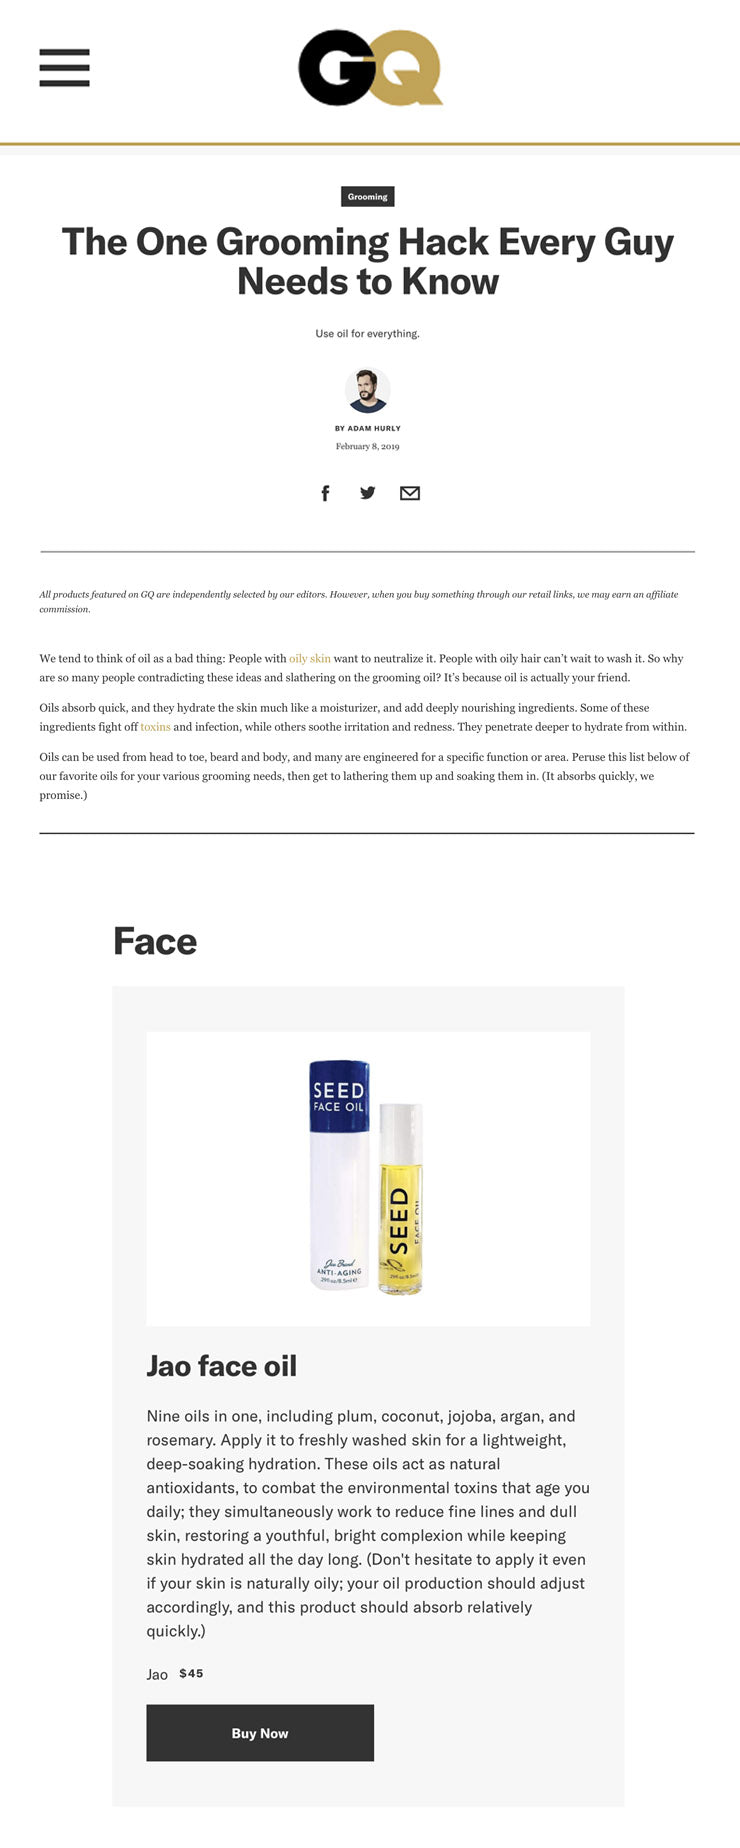 GQ: Jao Seed Face Oil The One Grooming Hack Every Guy Needs to Know